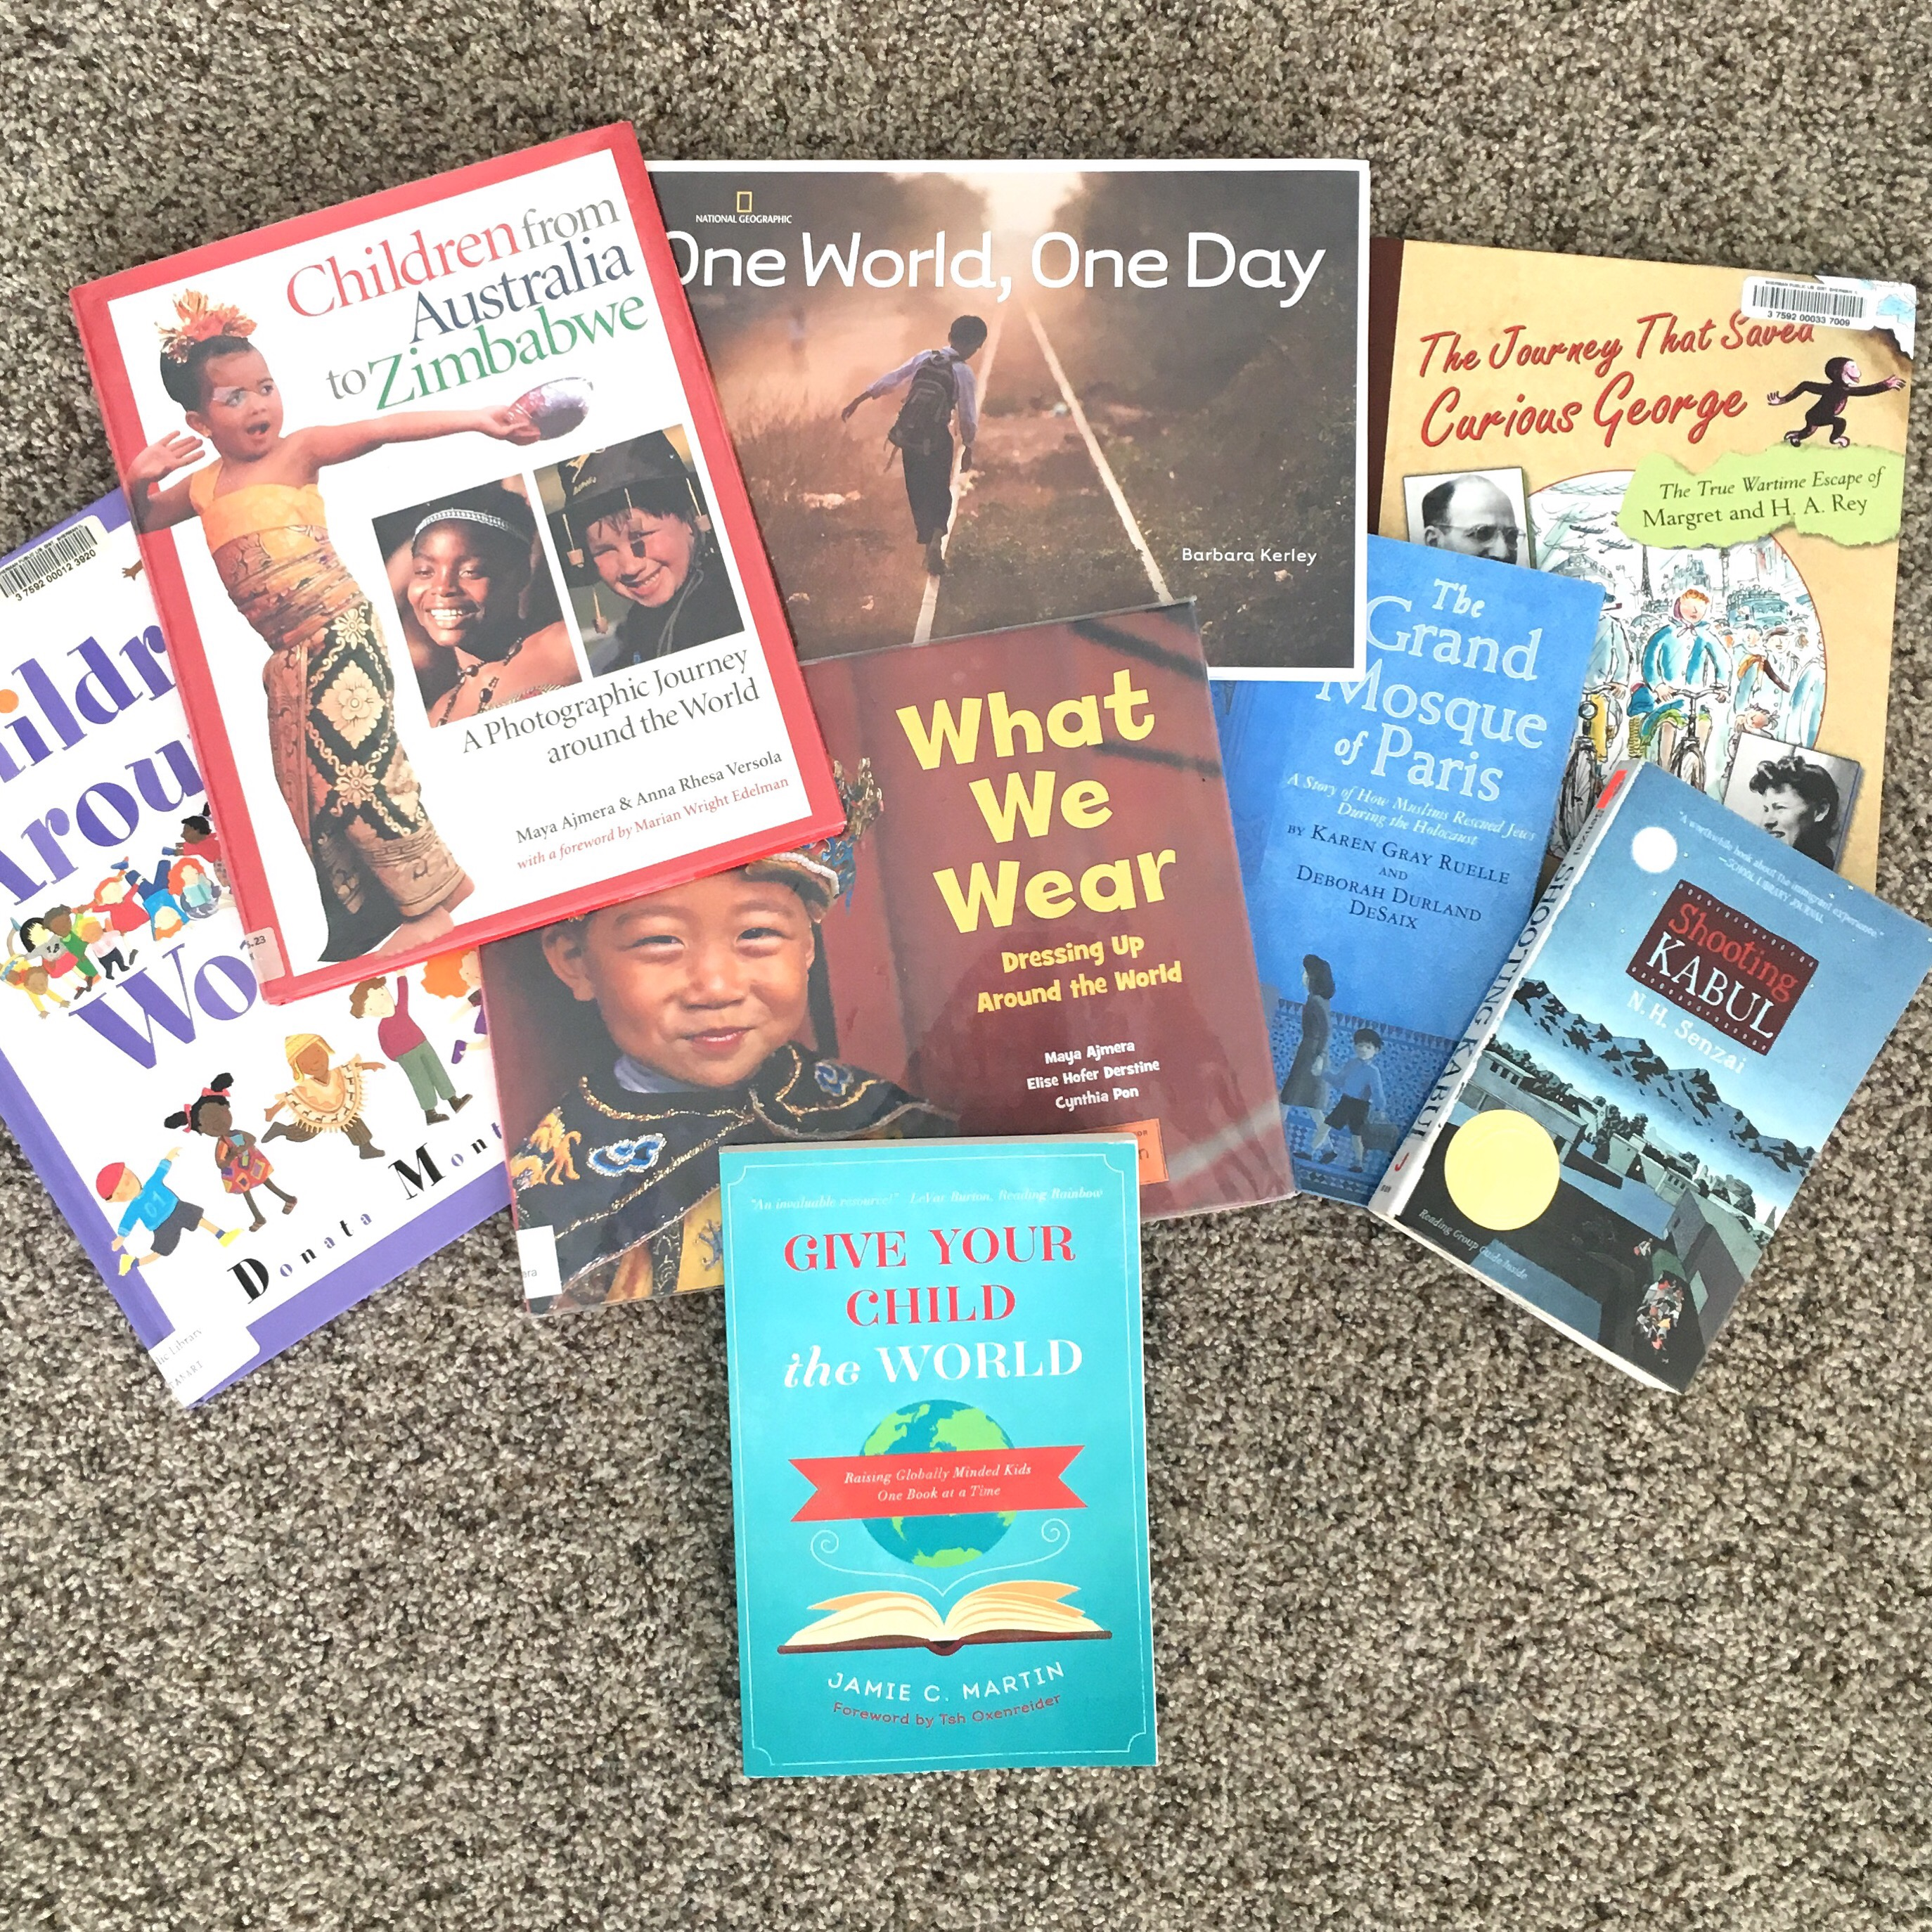 Give Your Child the World – through books!